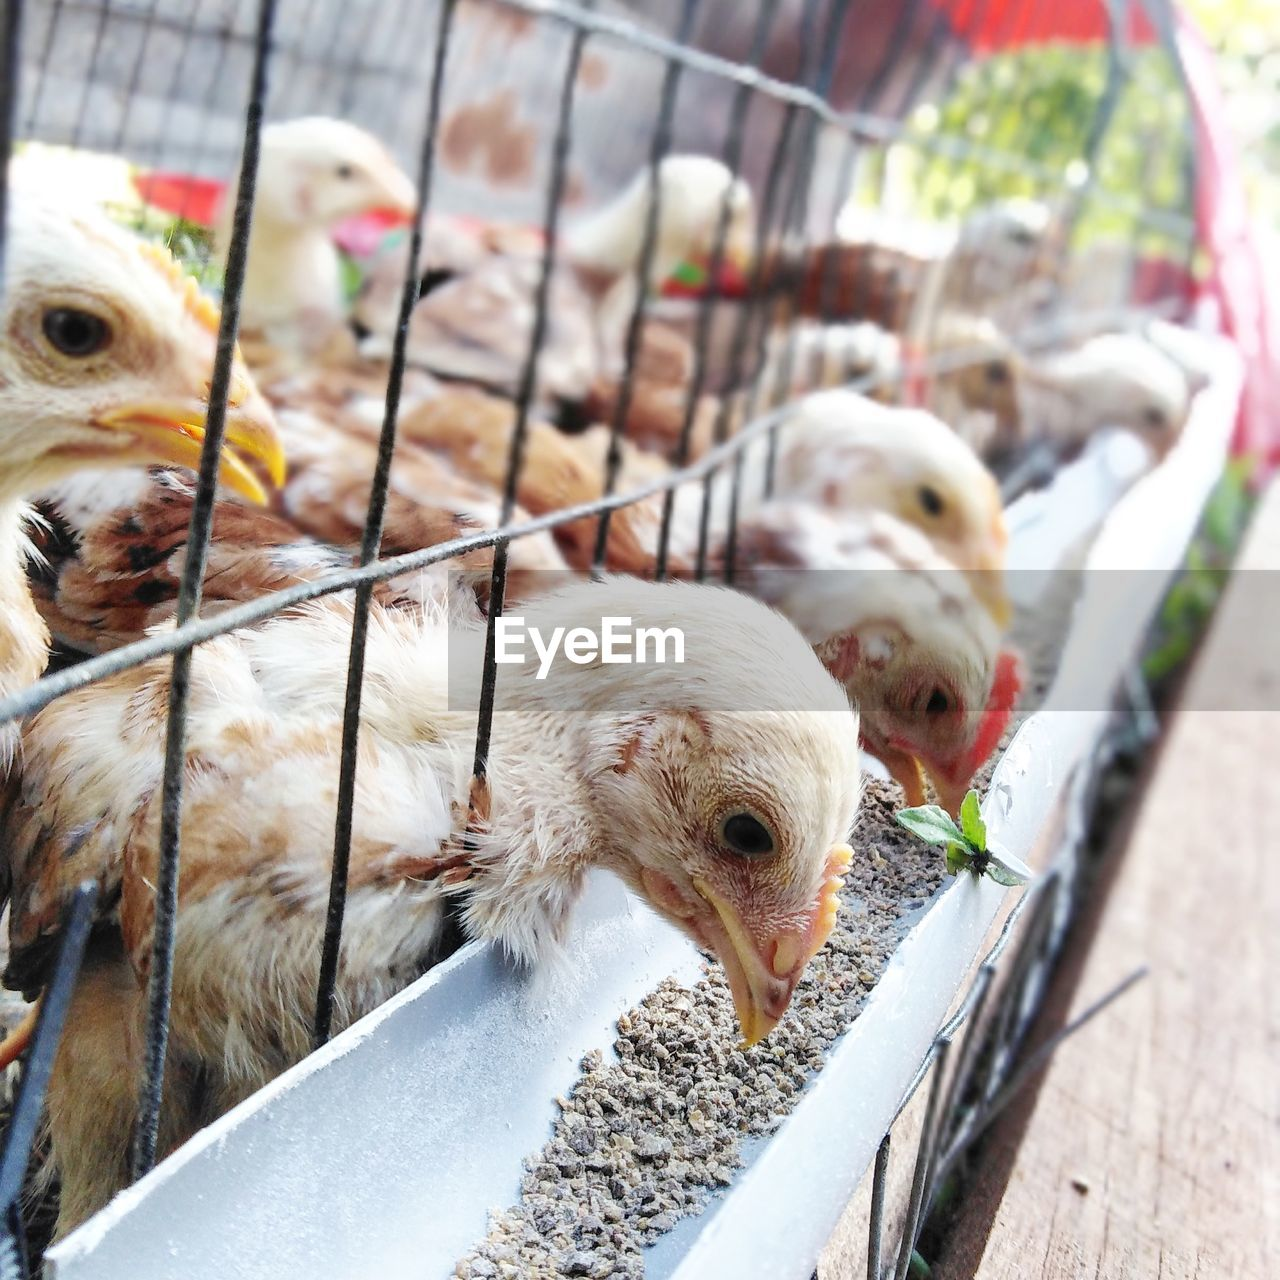 Chickens In Cage At Farm